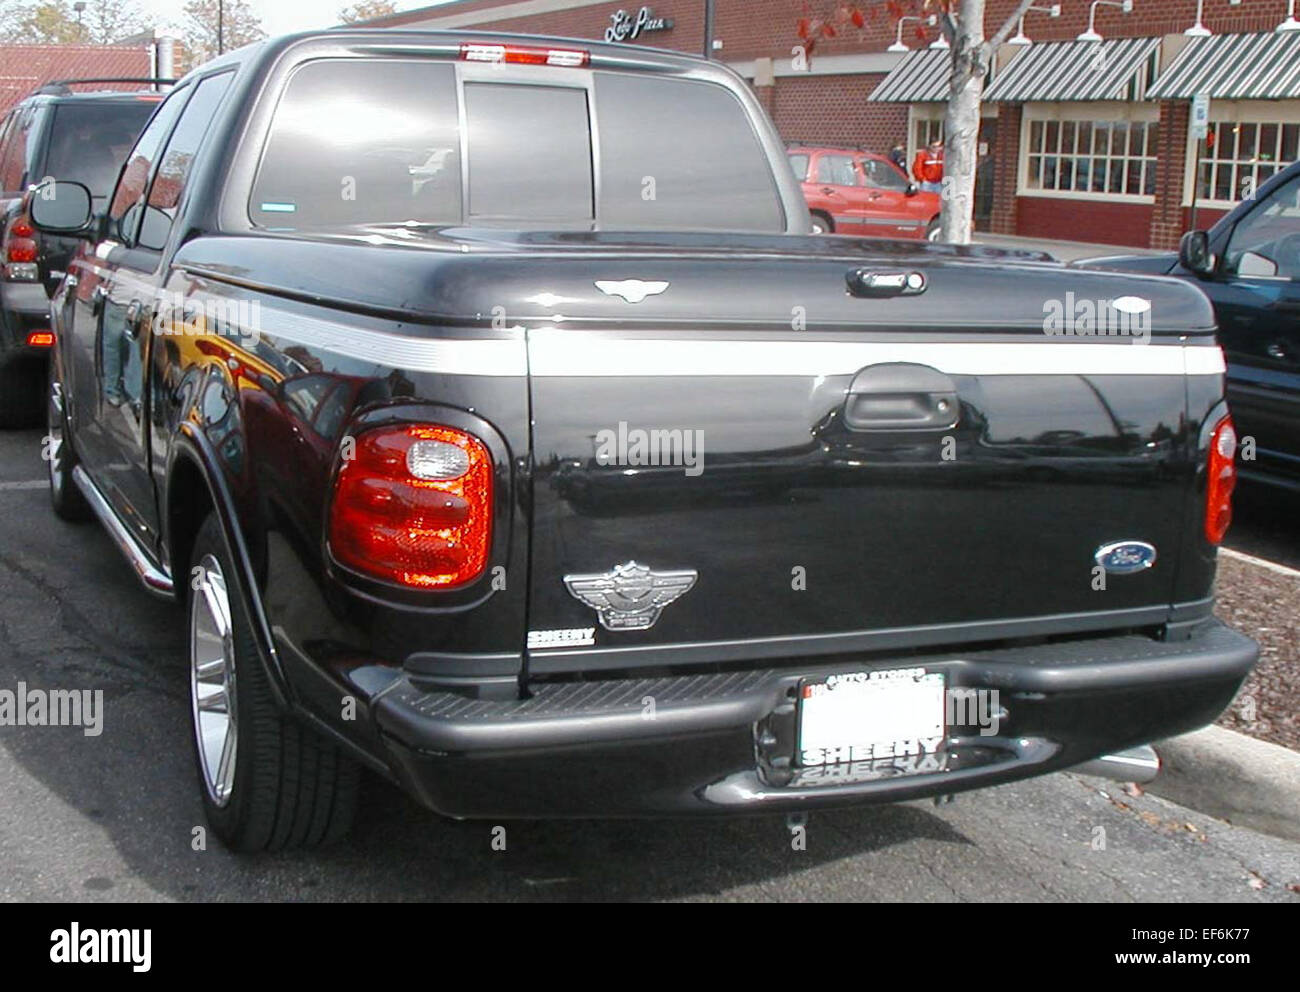 Ford F150 Stock Photos Images Alamy 2014 F 150 Harley Davidson Image